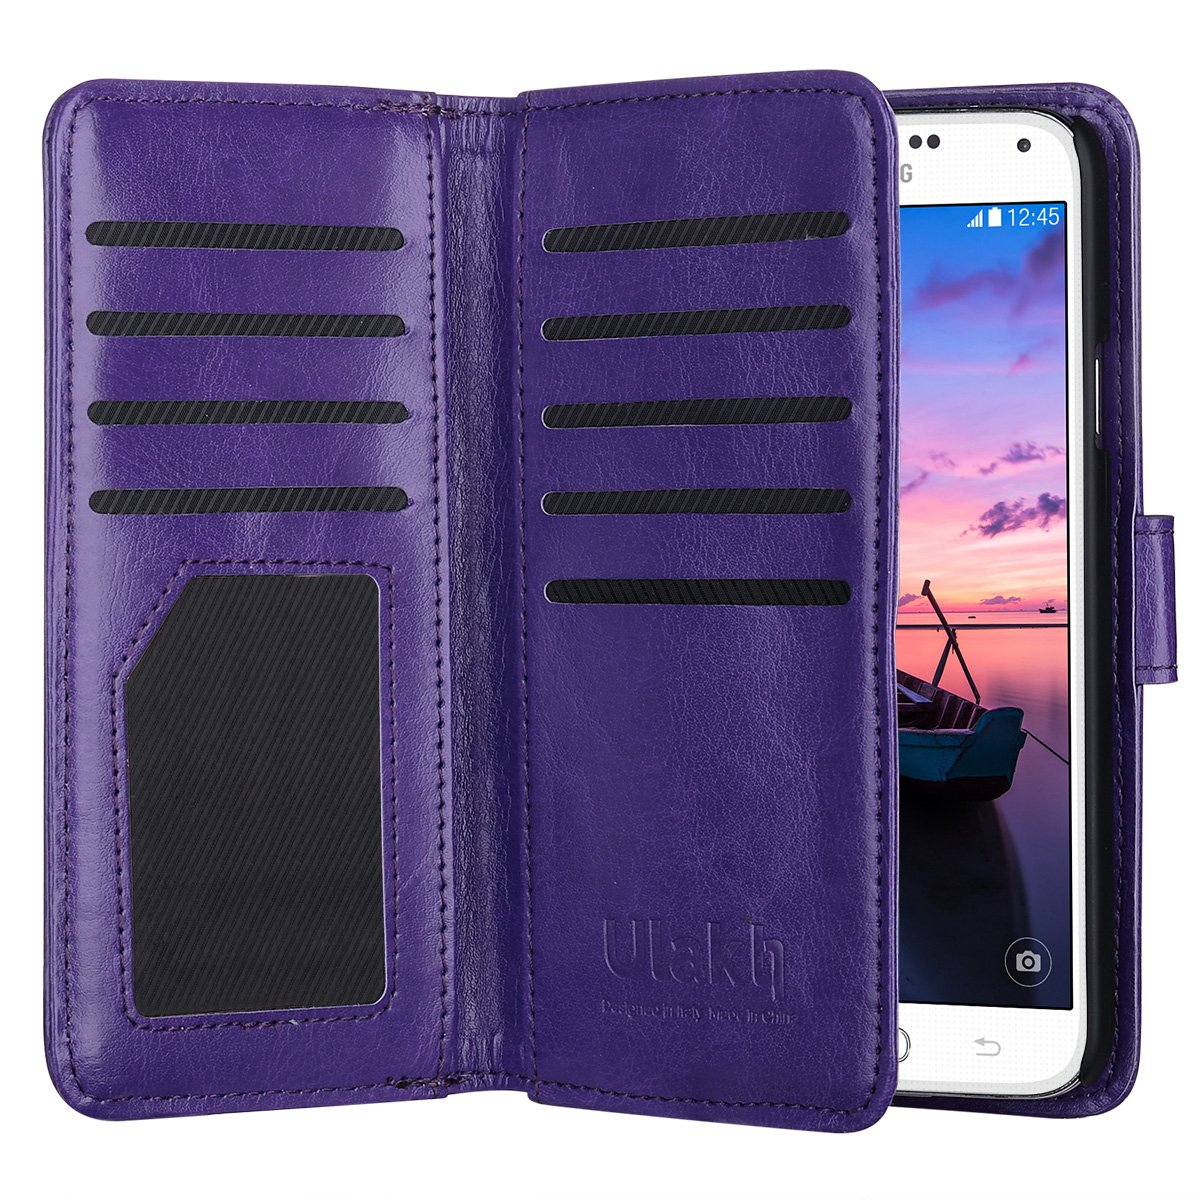 samsung galaxy s5 wallet cell phone cases amazon comulak galaxy s5 case, samsung s5 wallet case, fashion pu leather magnet wallet flip